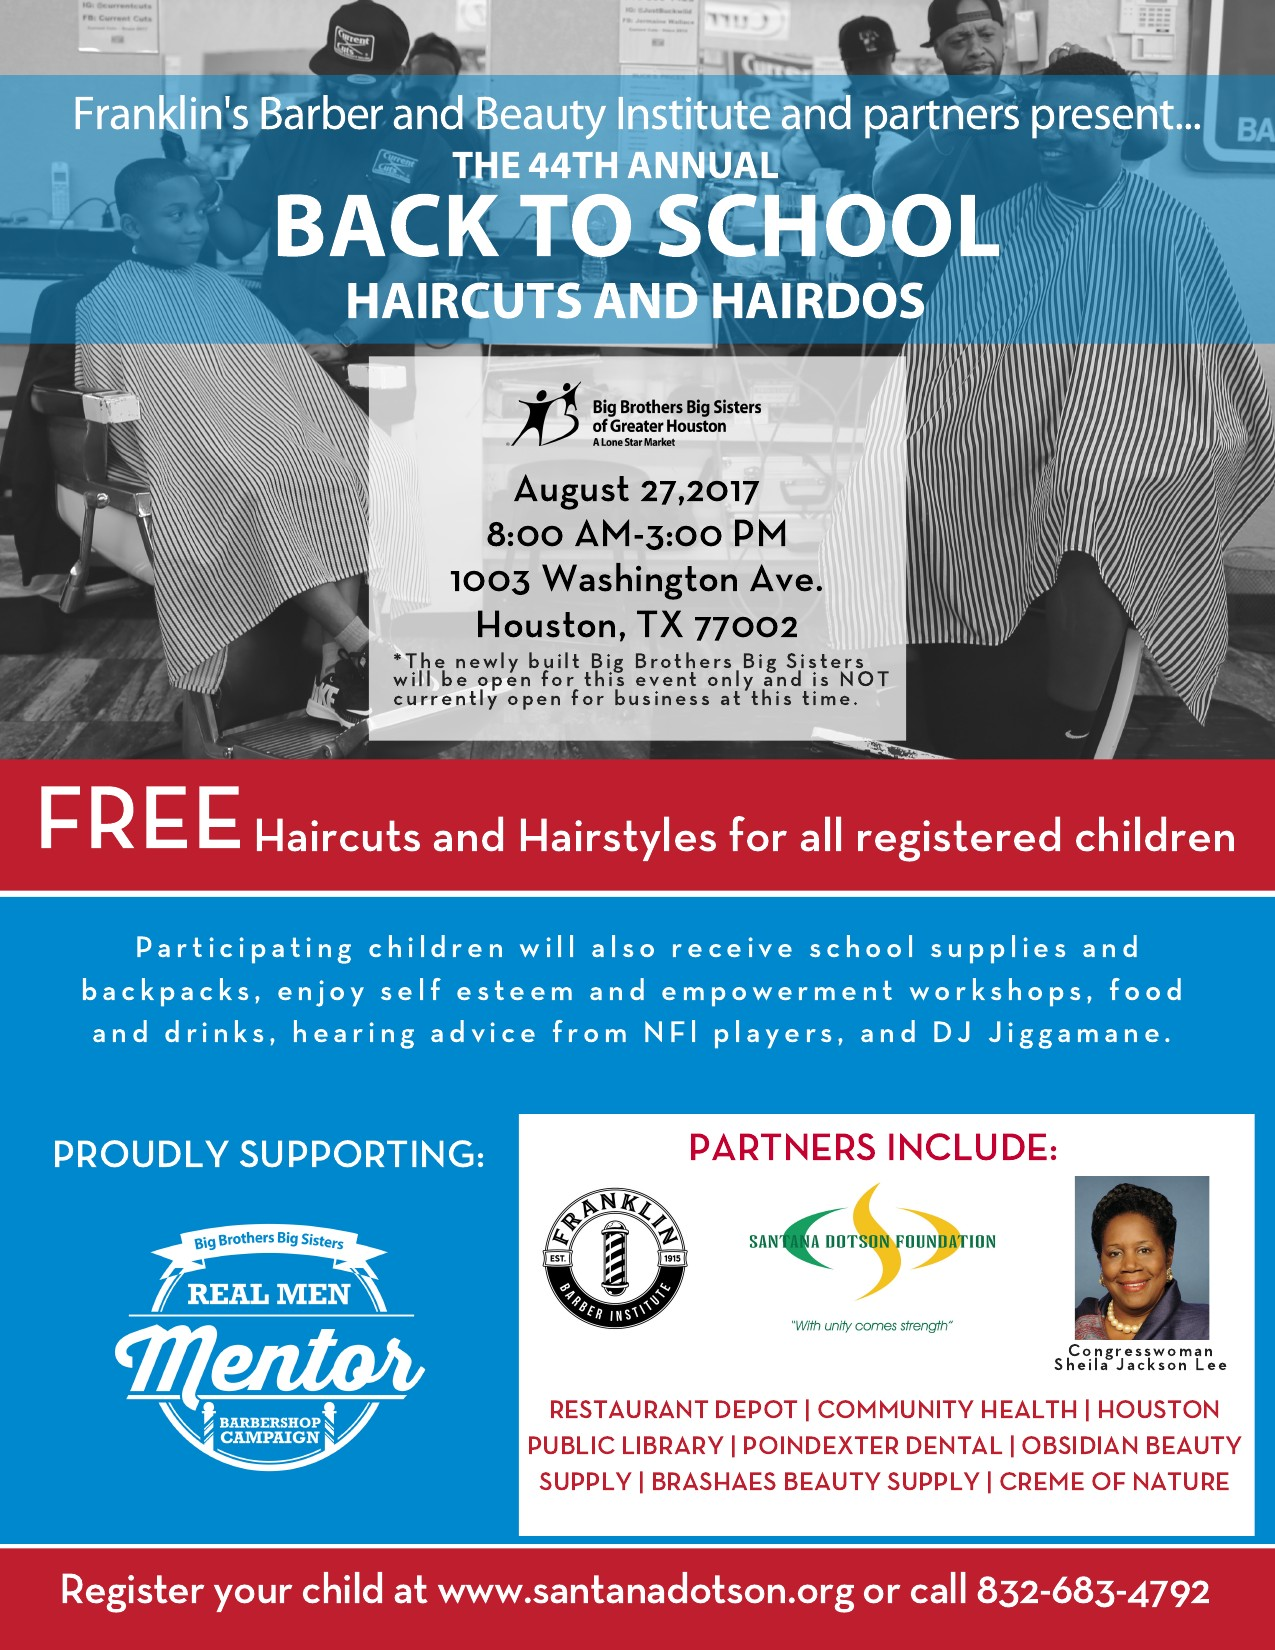 2017 44th Annual Back-To-School Haircuts and Hairdos